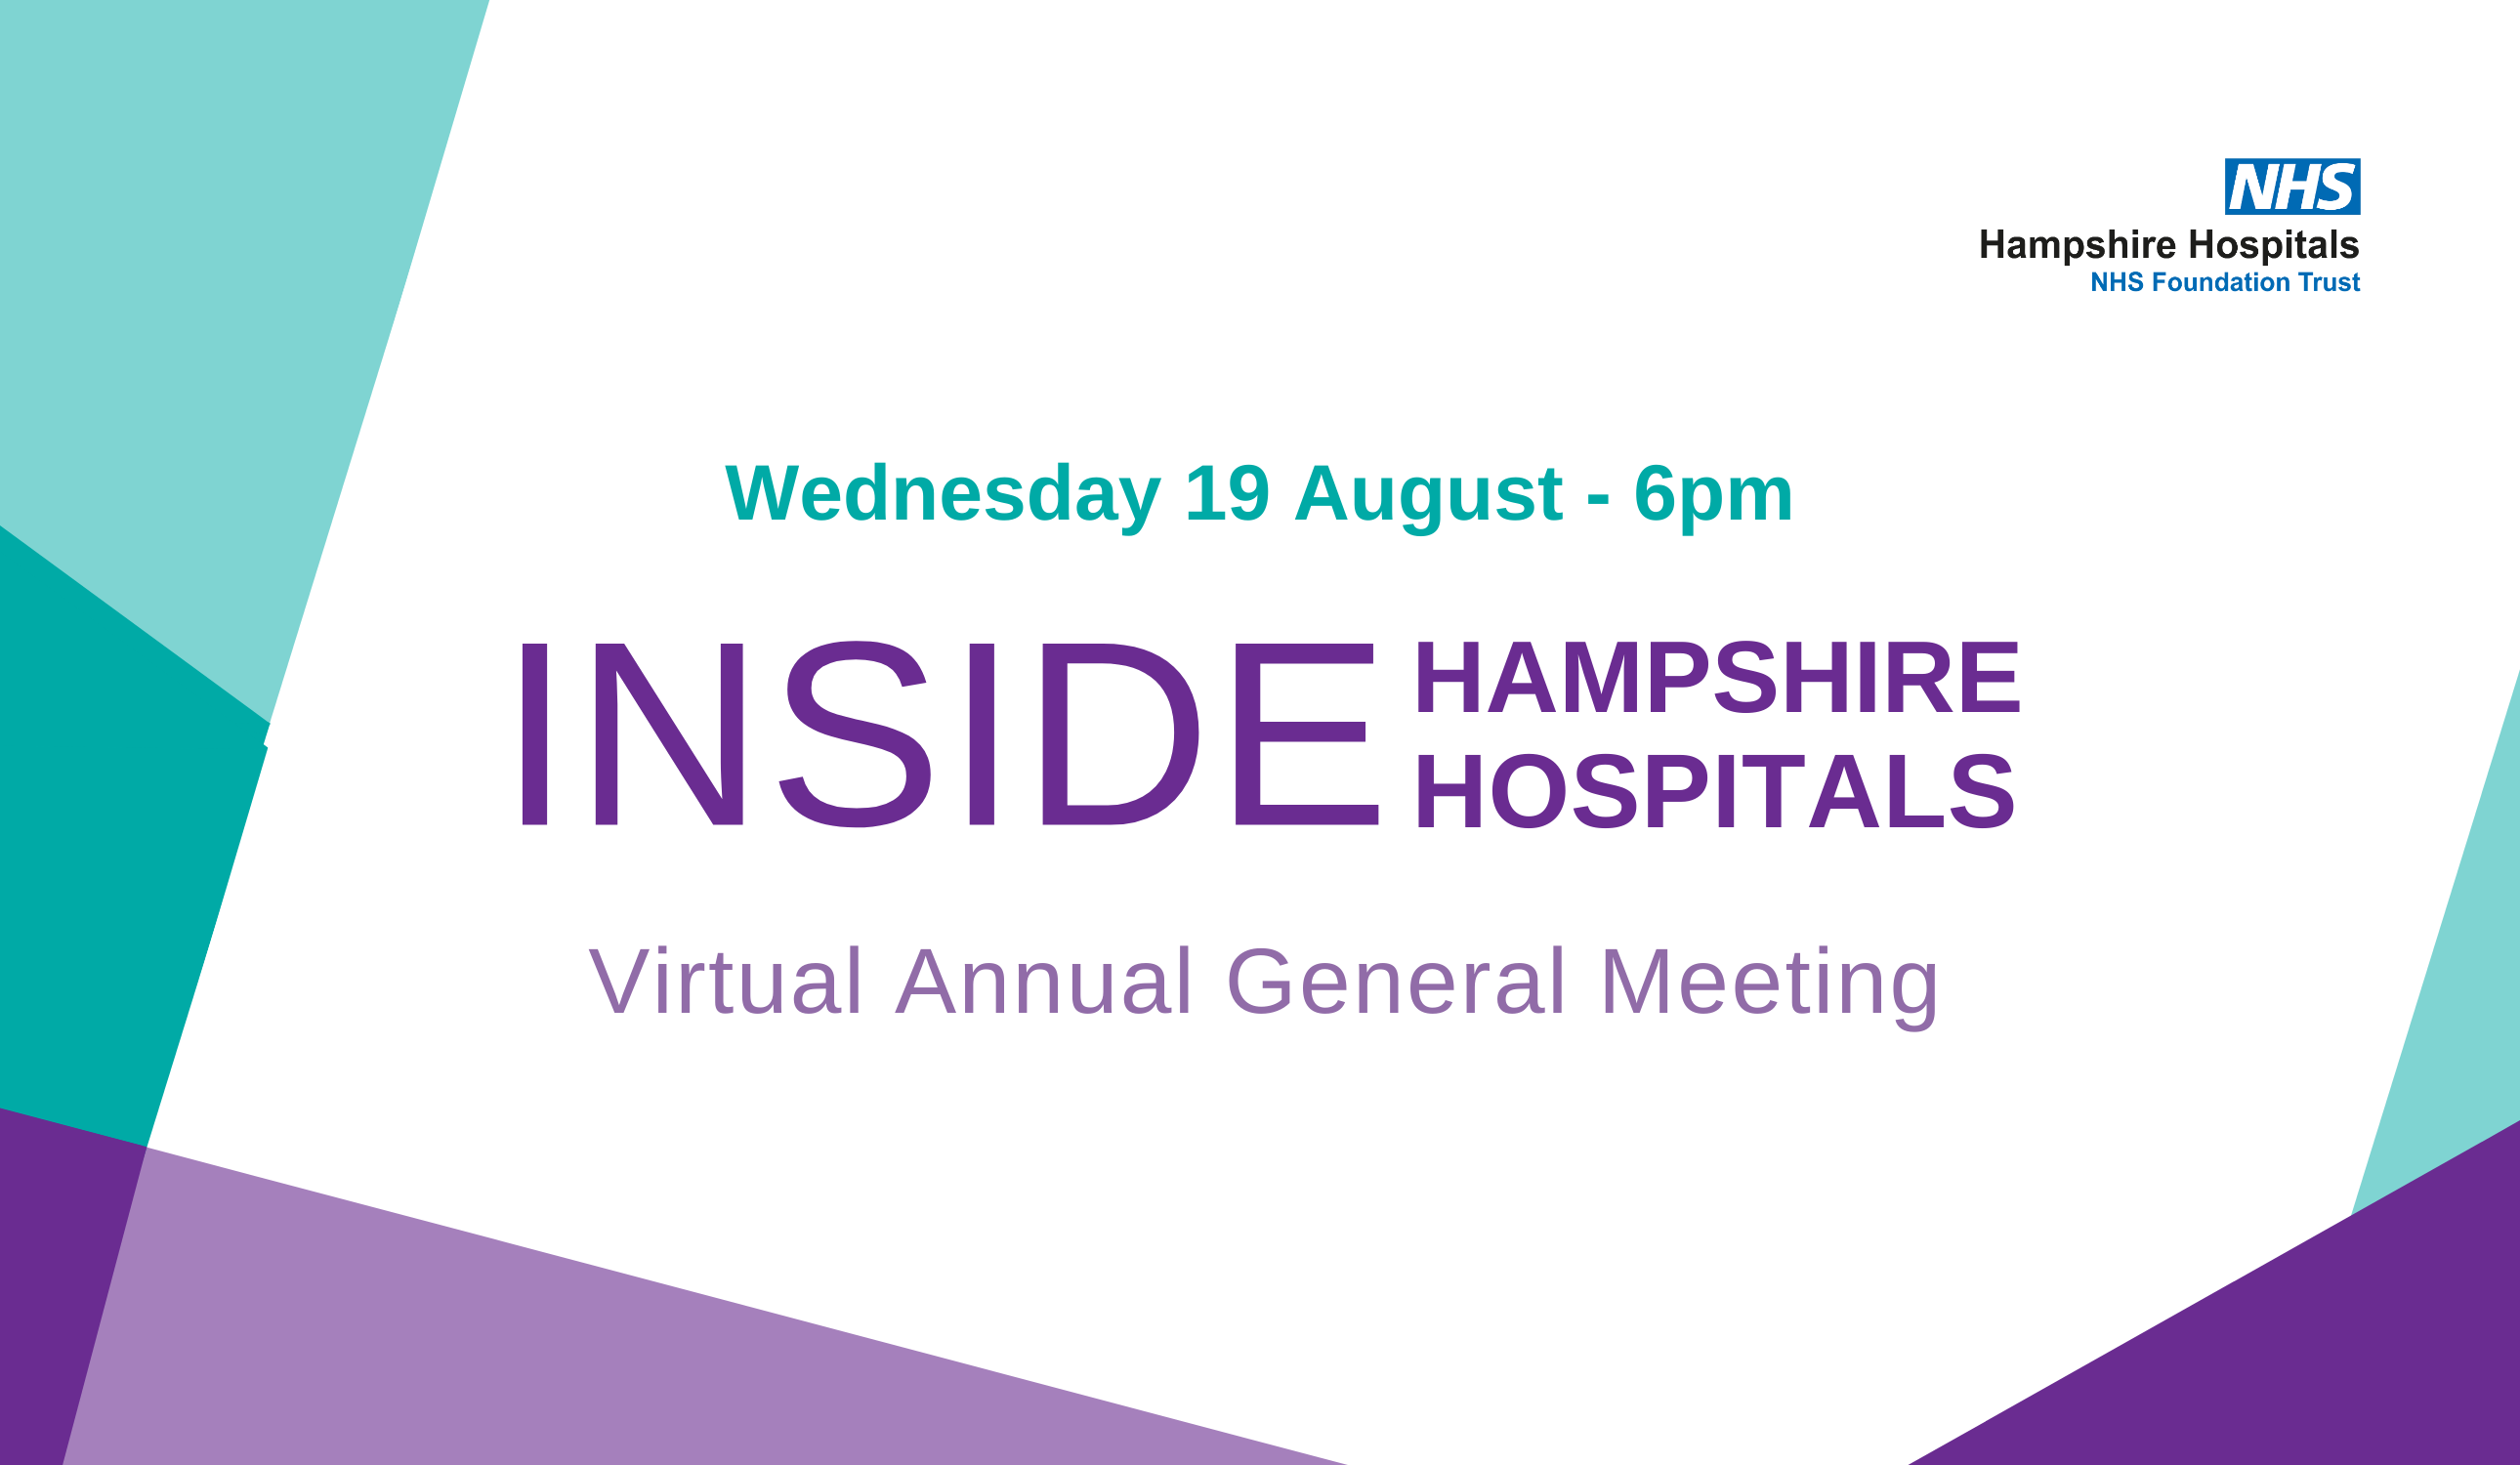 Inside Hampshire Hospitals: Annual General Meeting